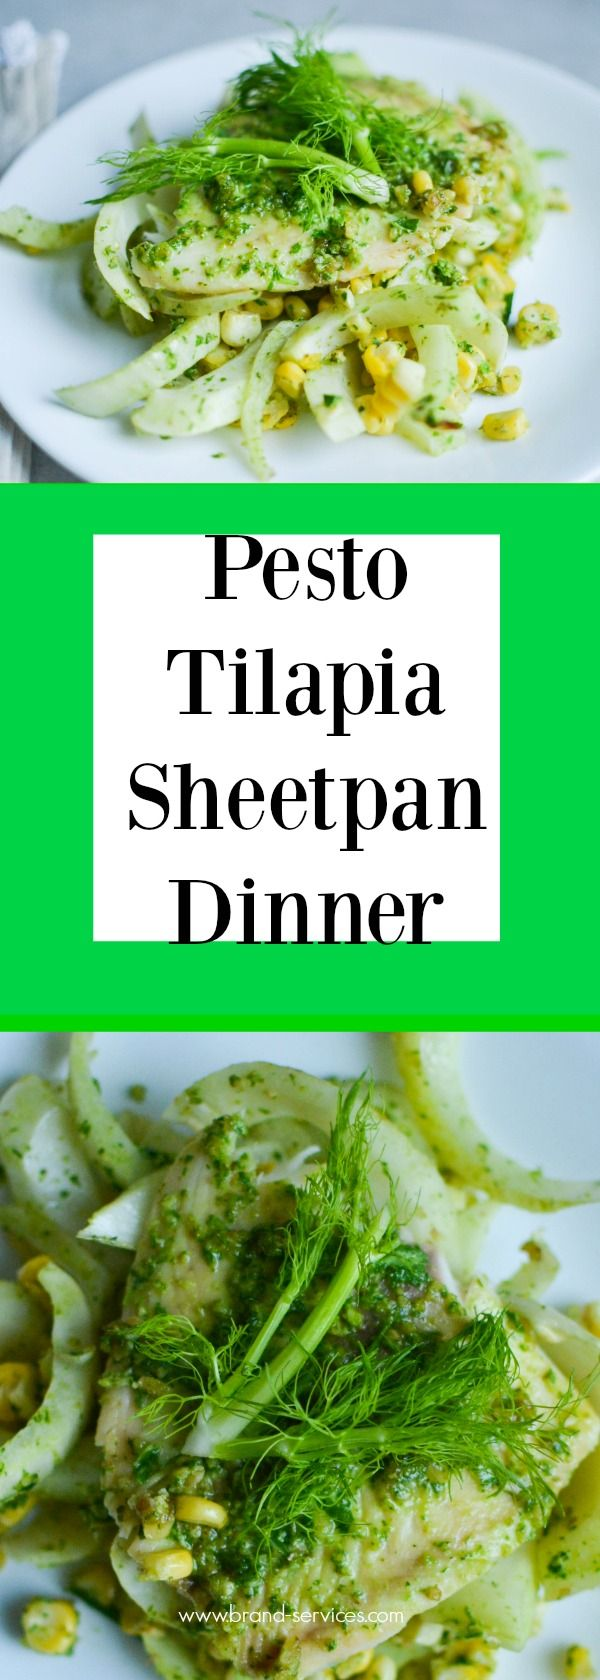 Dinner in under 30 minutes with little cleanup! Try my NEW recipe for Pesto Tilapia Sheetpan Dinner on One Hungry Bunny now! This recipe is Dairy Free and Gluten Free!  Healthy Recipes | Fish Dinners | Weekday Meals| Gluten Free| Dairy Free | Pesto recipes | Sheet Pan Meals | Dietitian| Healthy Dinners | Seafood | Fennel